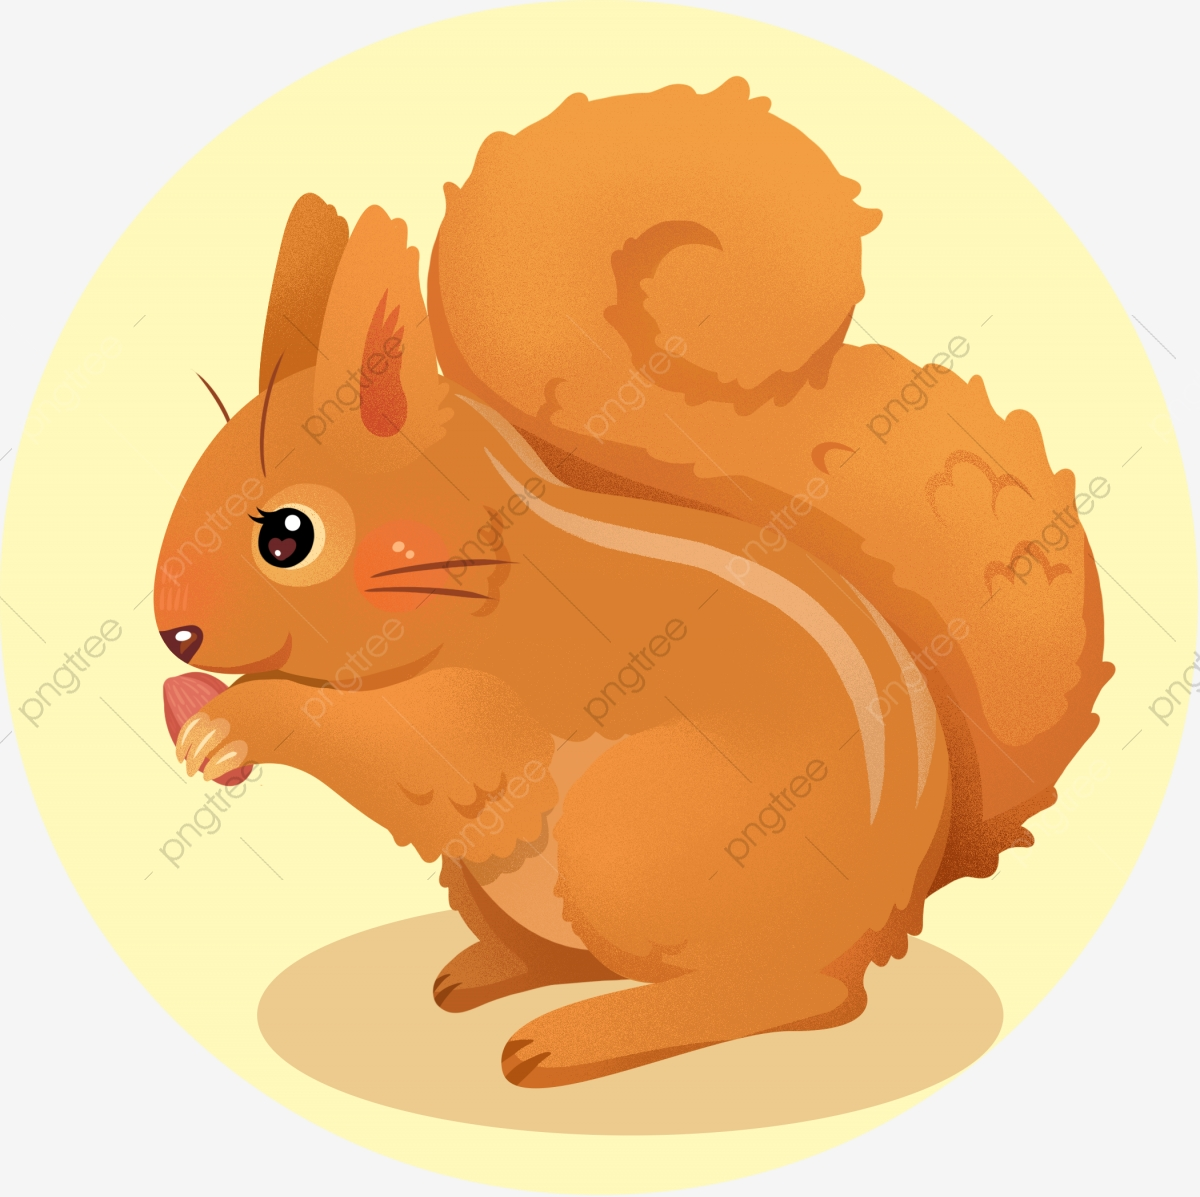 Cute Animal Little Squirrel Fall Vertical Autumn Mammal Cartoon Cute Cartoon Animal Squirrel Png Transparent Image And Clipart For Free Download